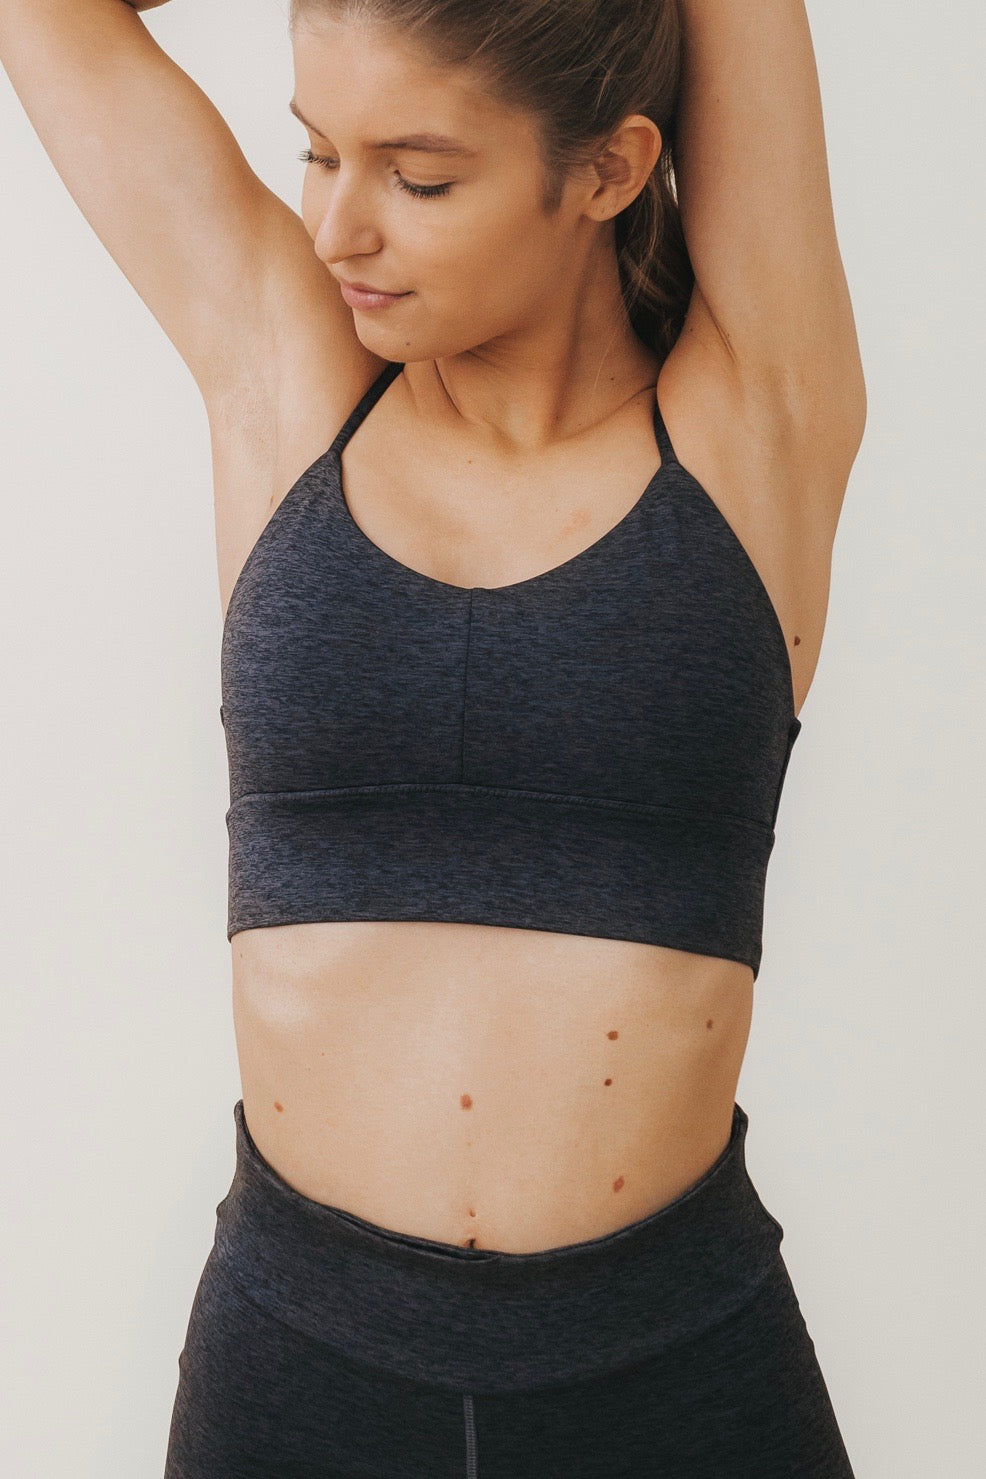 LENA Sports Bralette in Charcoal